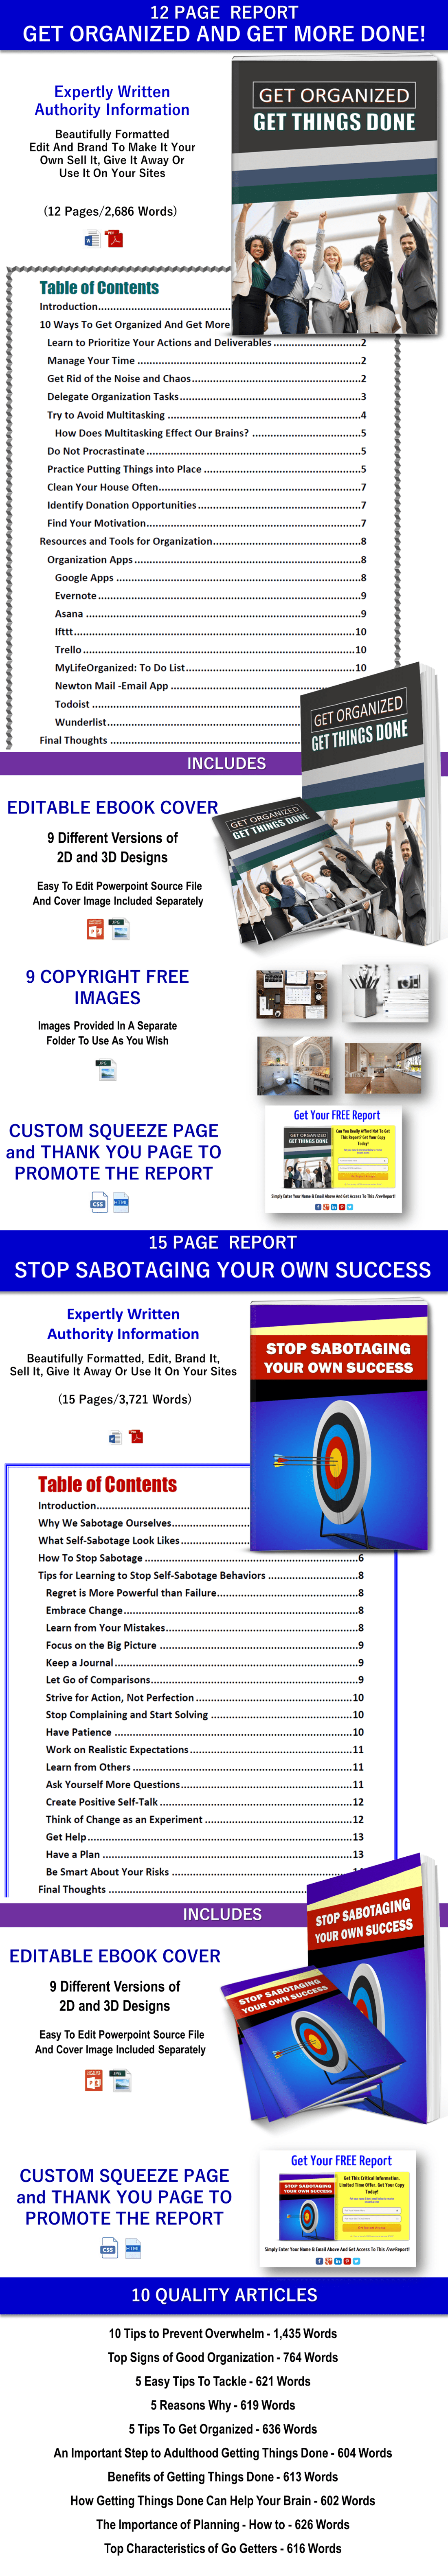 Get Organized and Get Things Done and Sabotage Success PLR